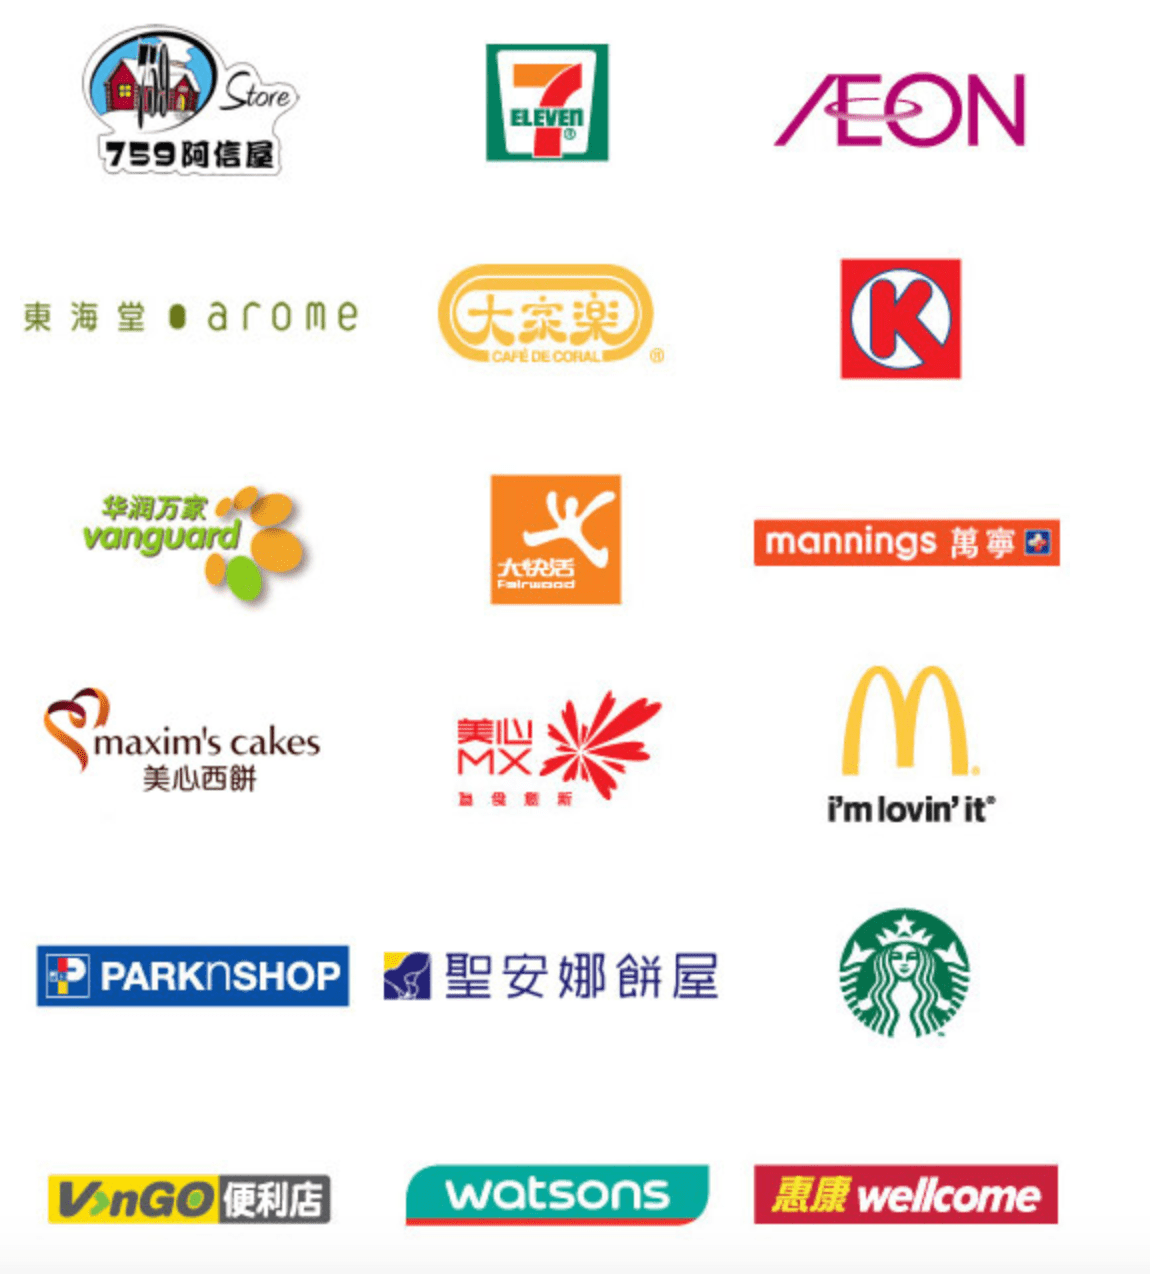 Where to reload your Octopus Card? Over a thousand locations in Hong Kong, that's where! Image credit:  Octopus Cards Limited